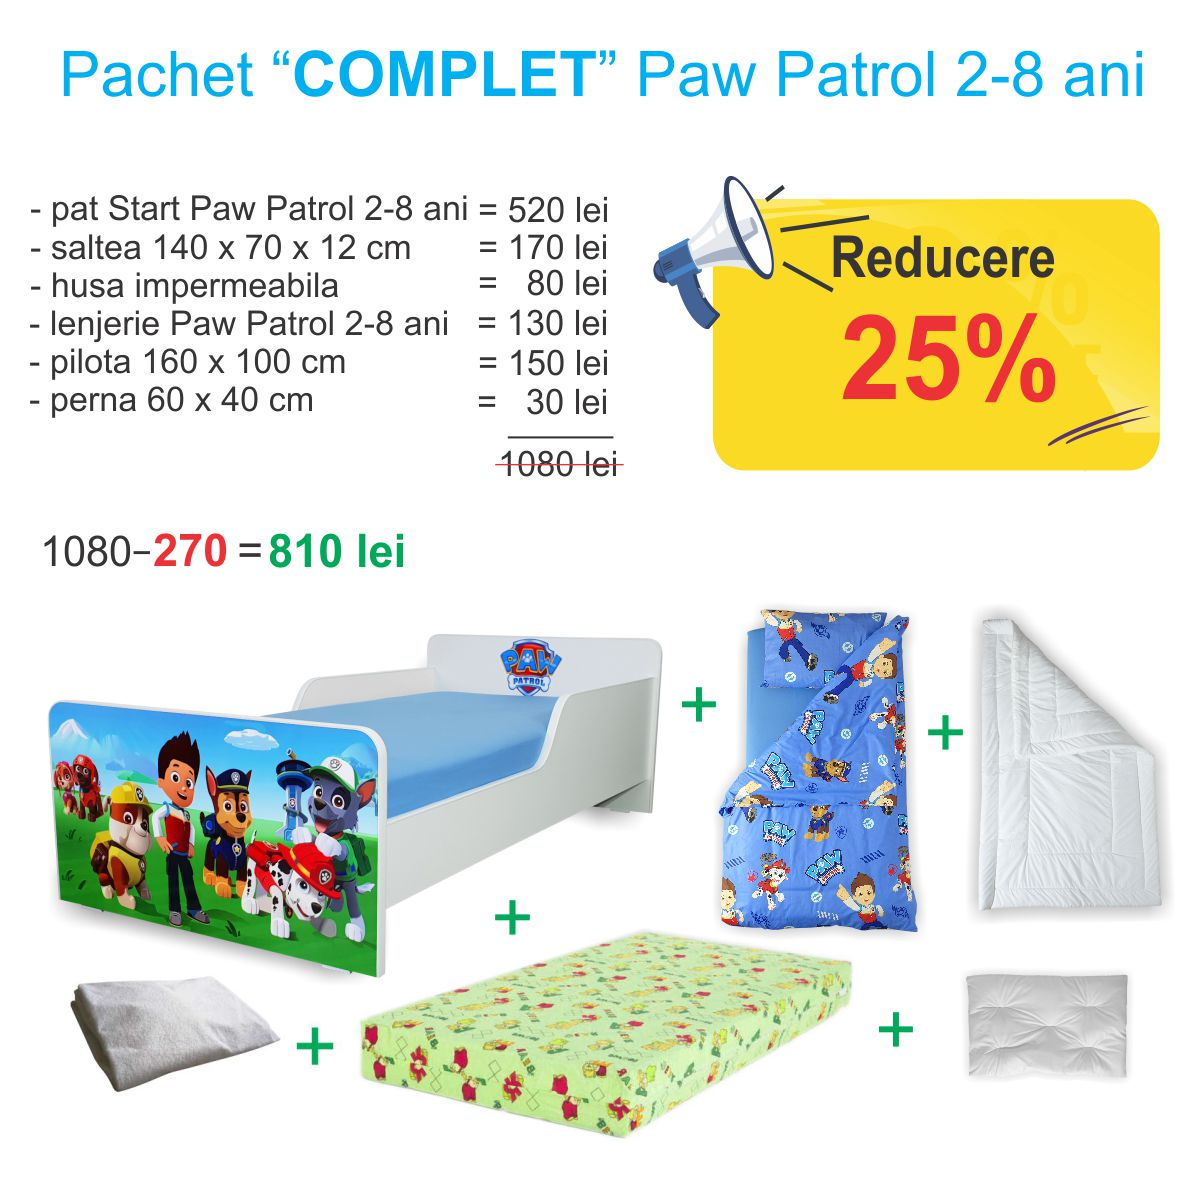 Pachet Promo COMPLET Start Paw Patrol 2-8 ani